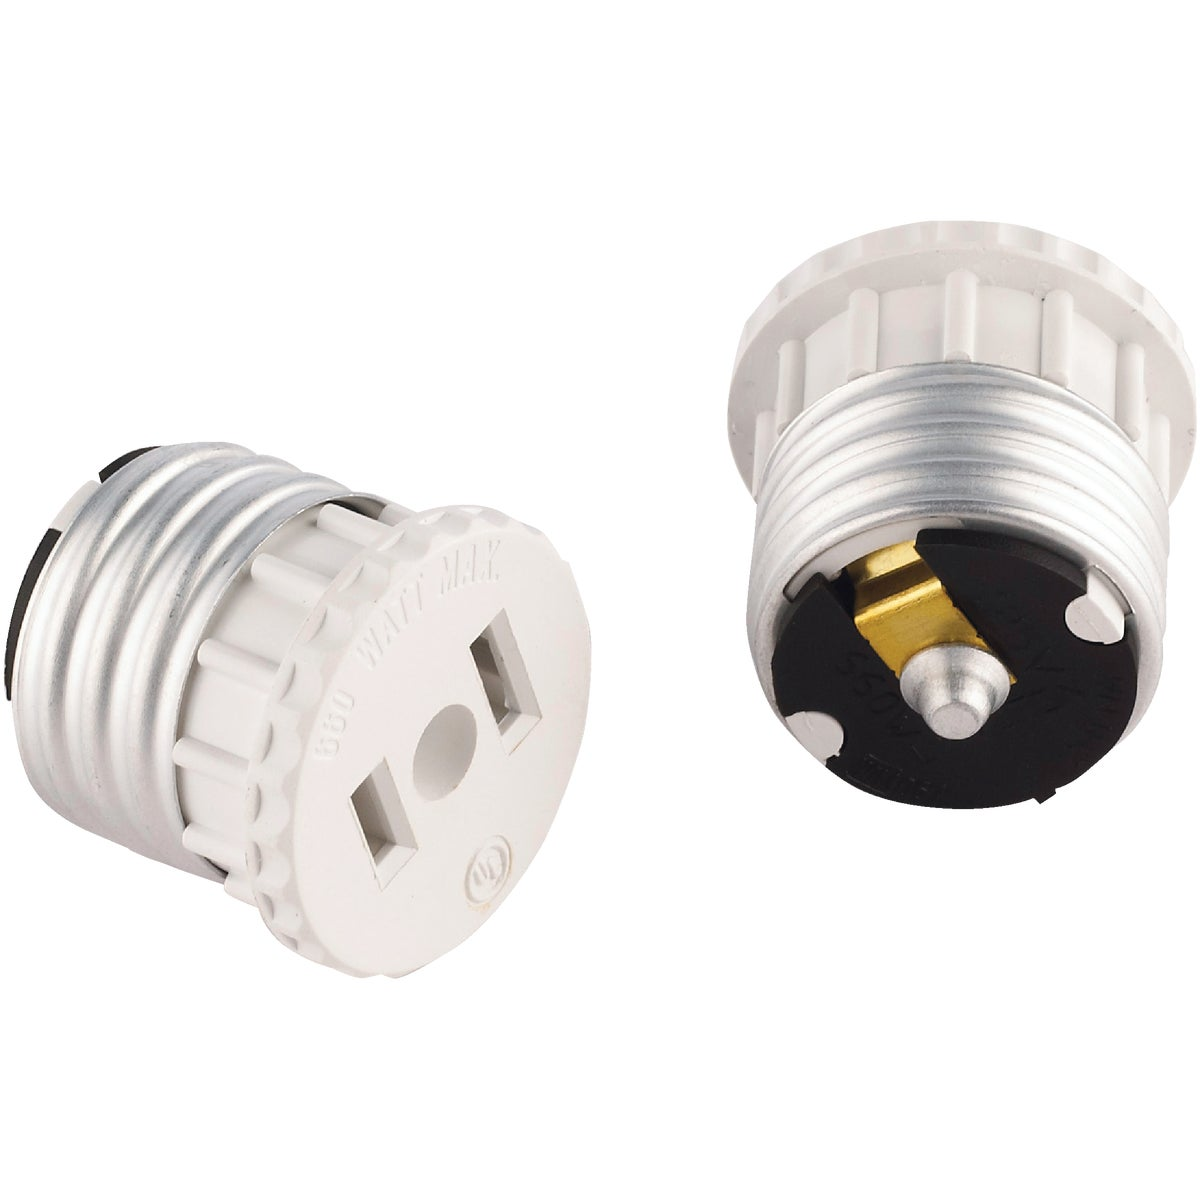 SOCKET/OUTLET ADAPTER - 875125W by Leviton Mfg Co